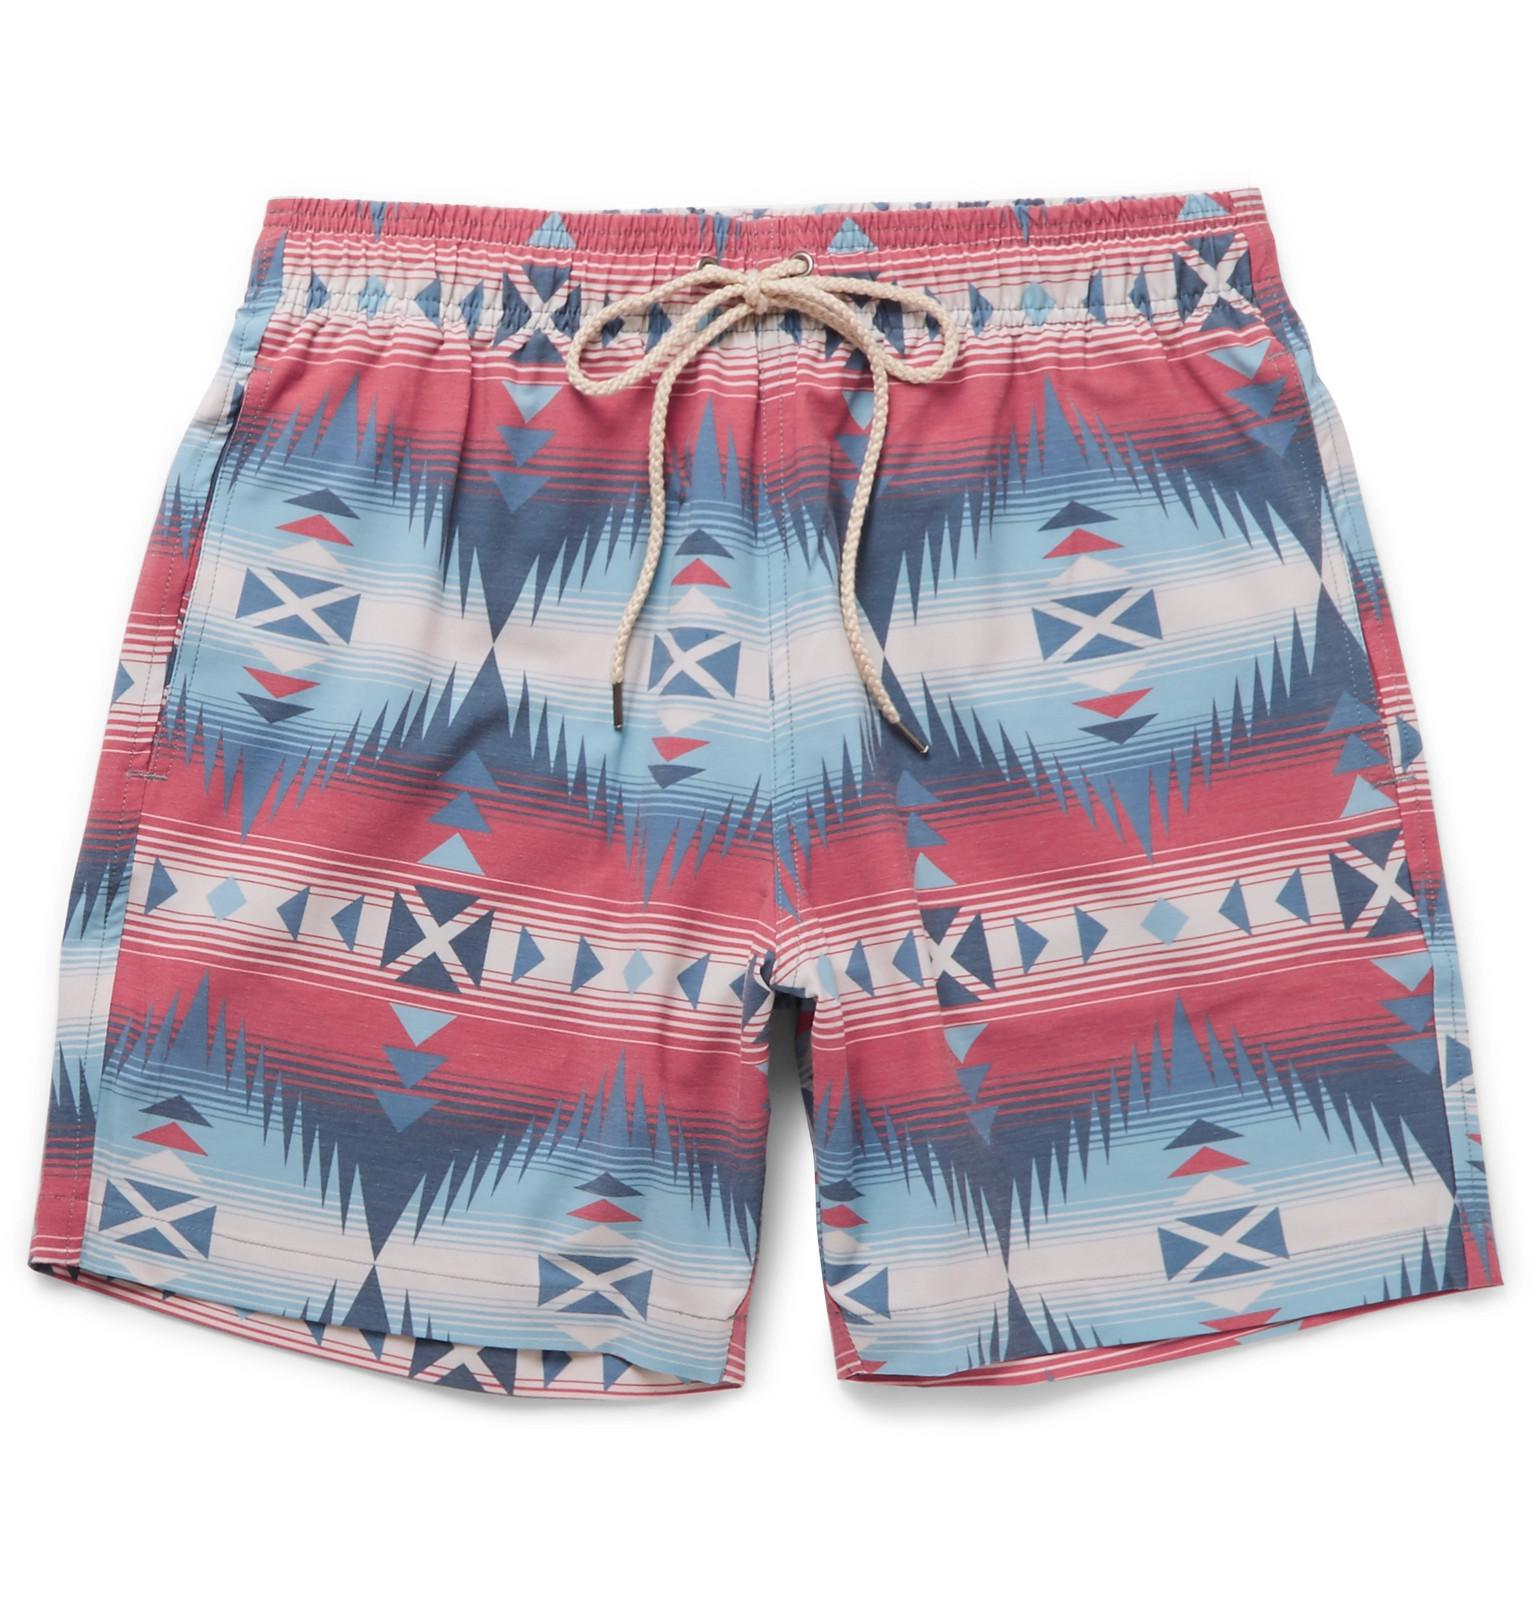 8896888bbcab7 Faherty Brand Beacon Mid-length Printed Swim Shorts for Men - Lyst